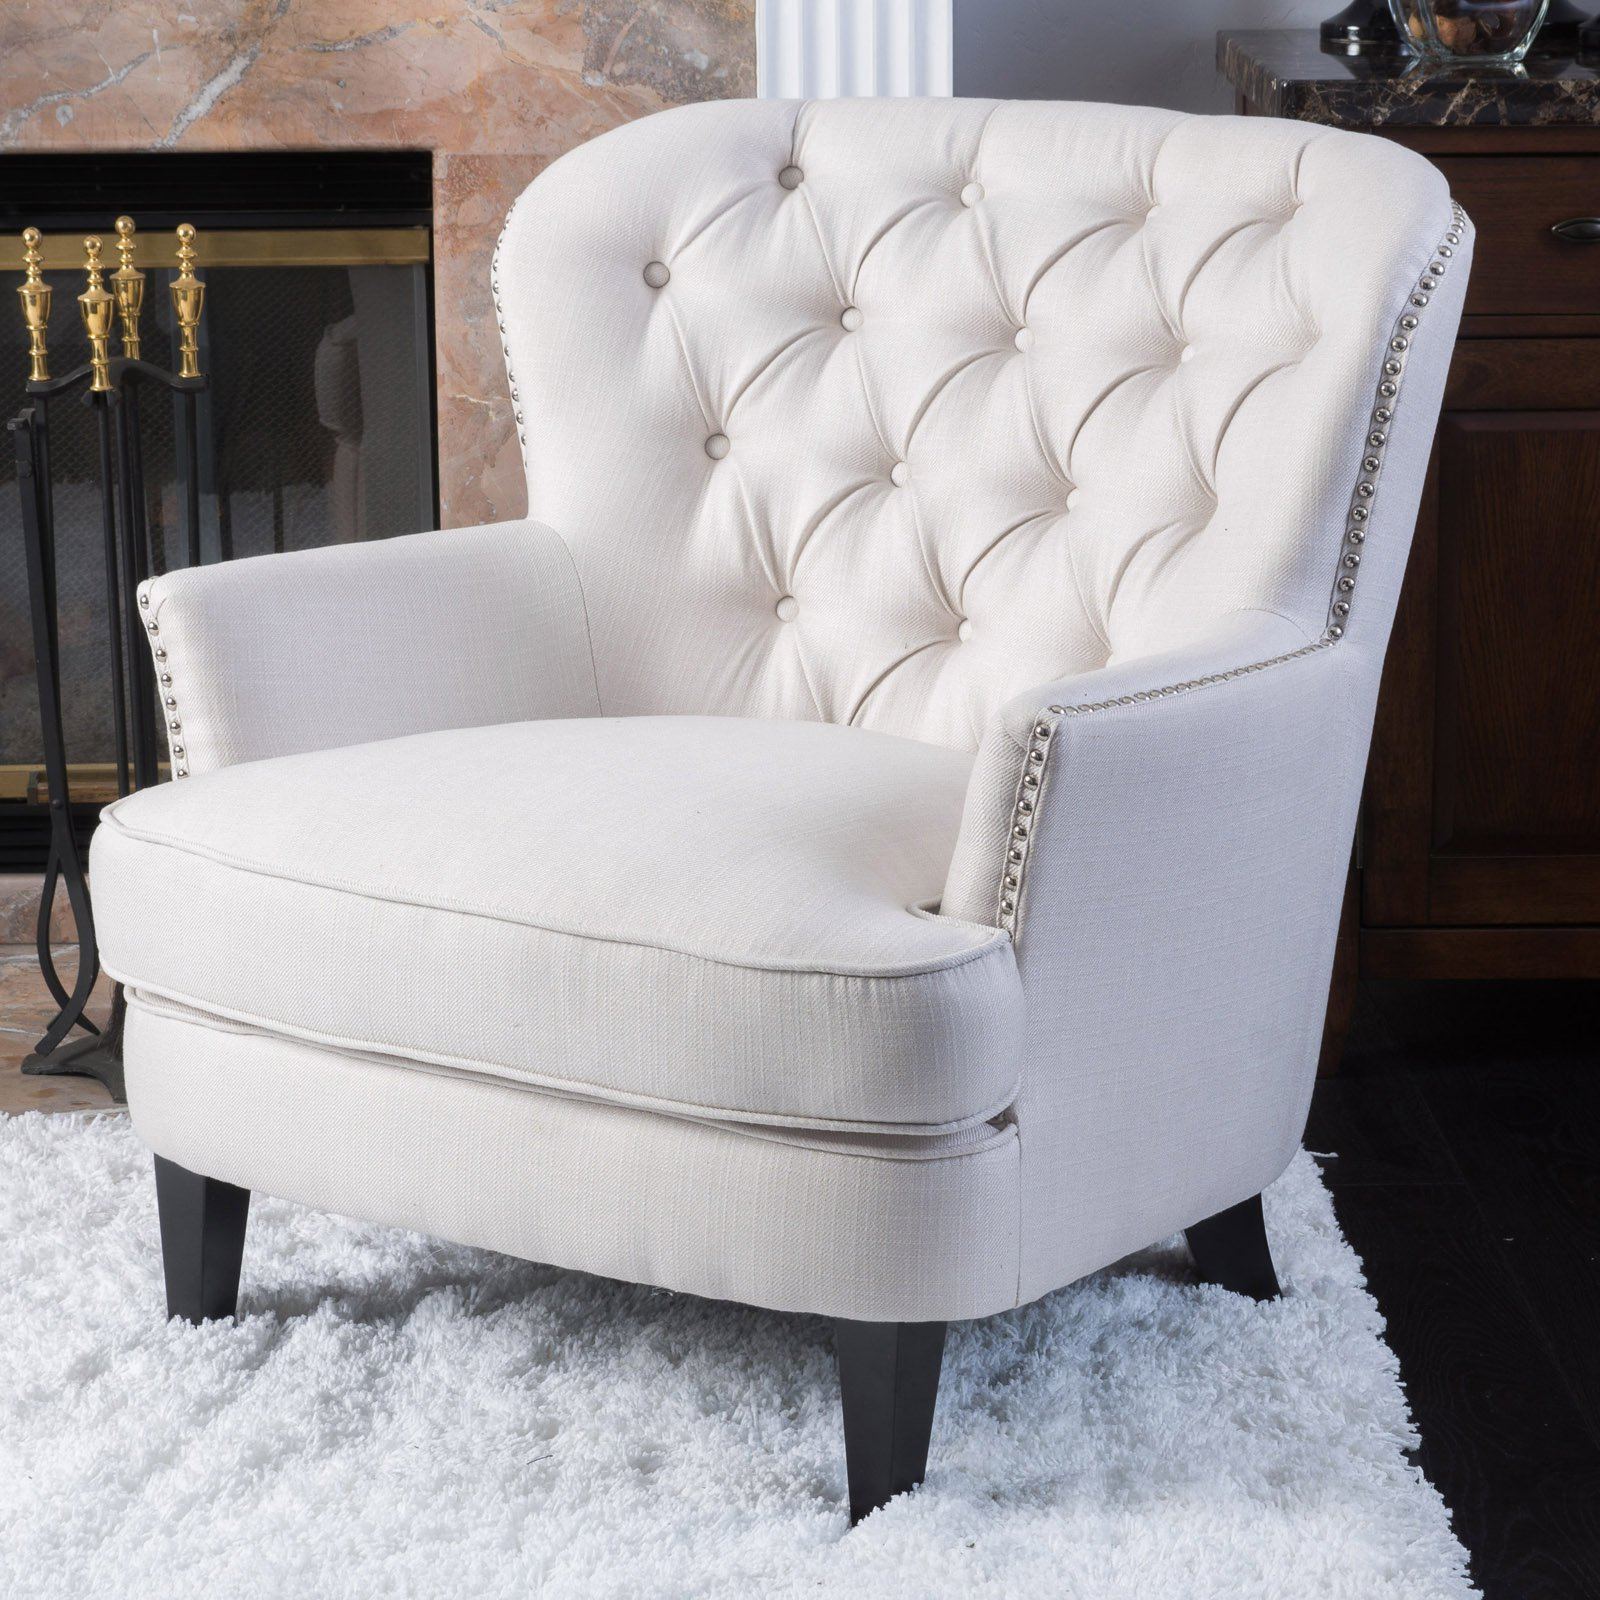 Best Selling Home Maidenstone Club Chair by Best Selling Home Decor Furniture LLC